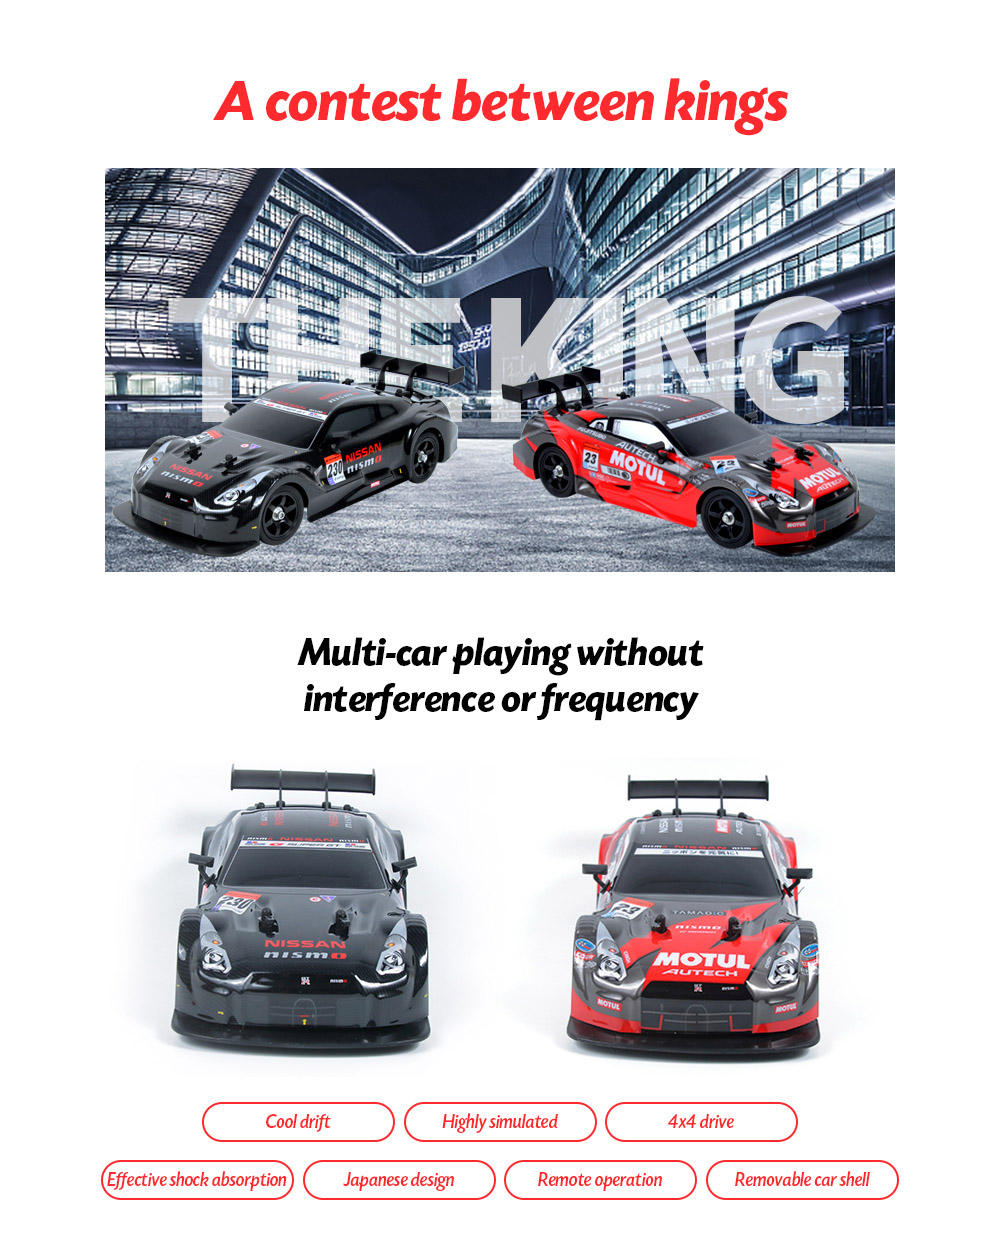 1:16 2.4G High Speed Drift Remote Control Car Multi-car playing without interference or frequency